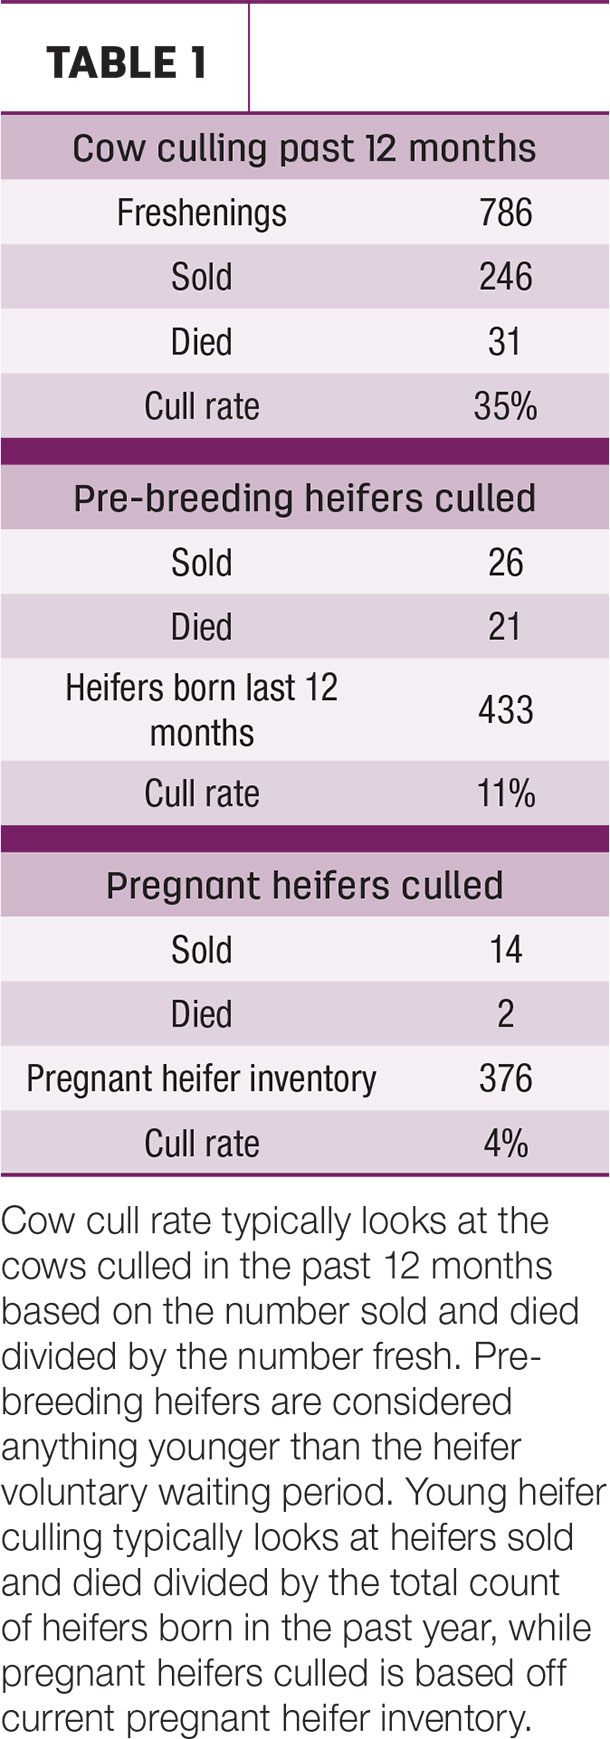 Cow culling past 12 months